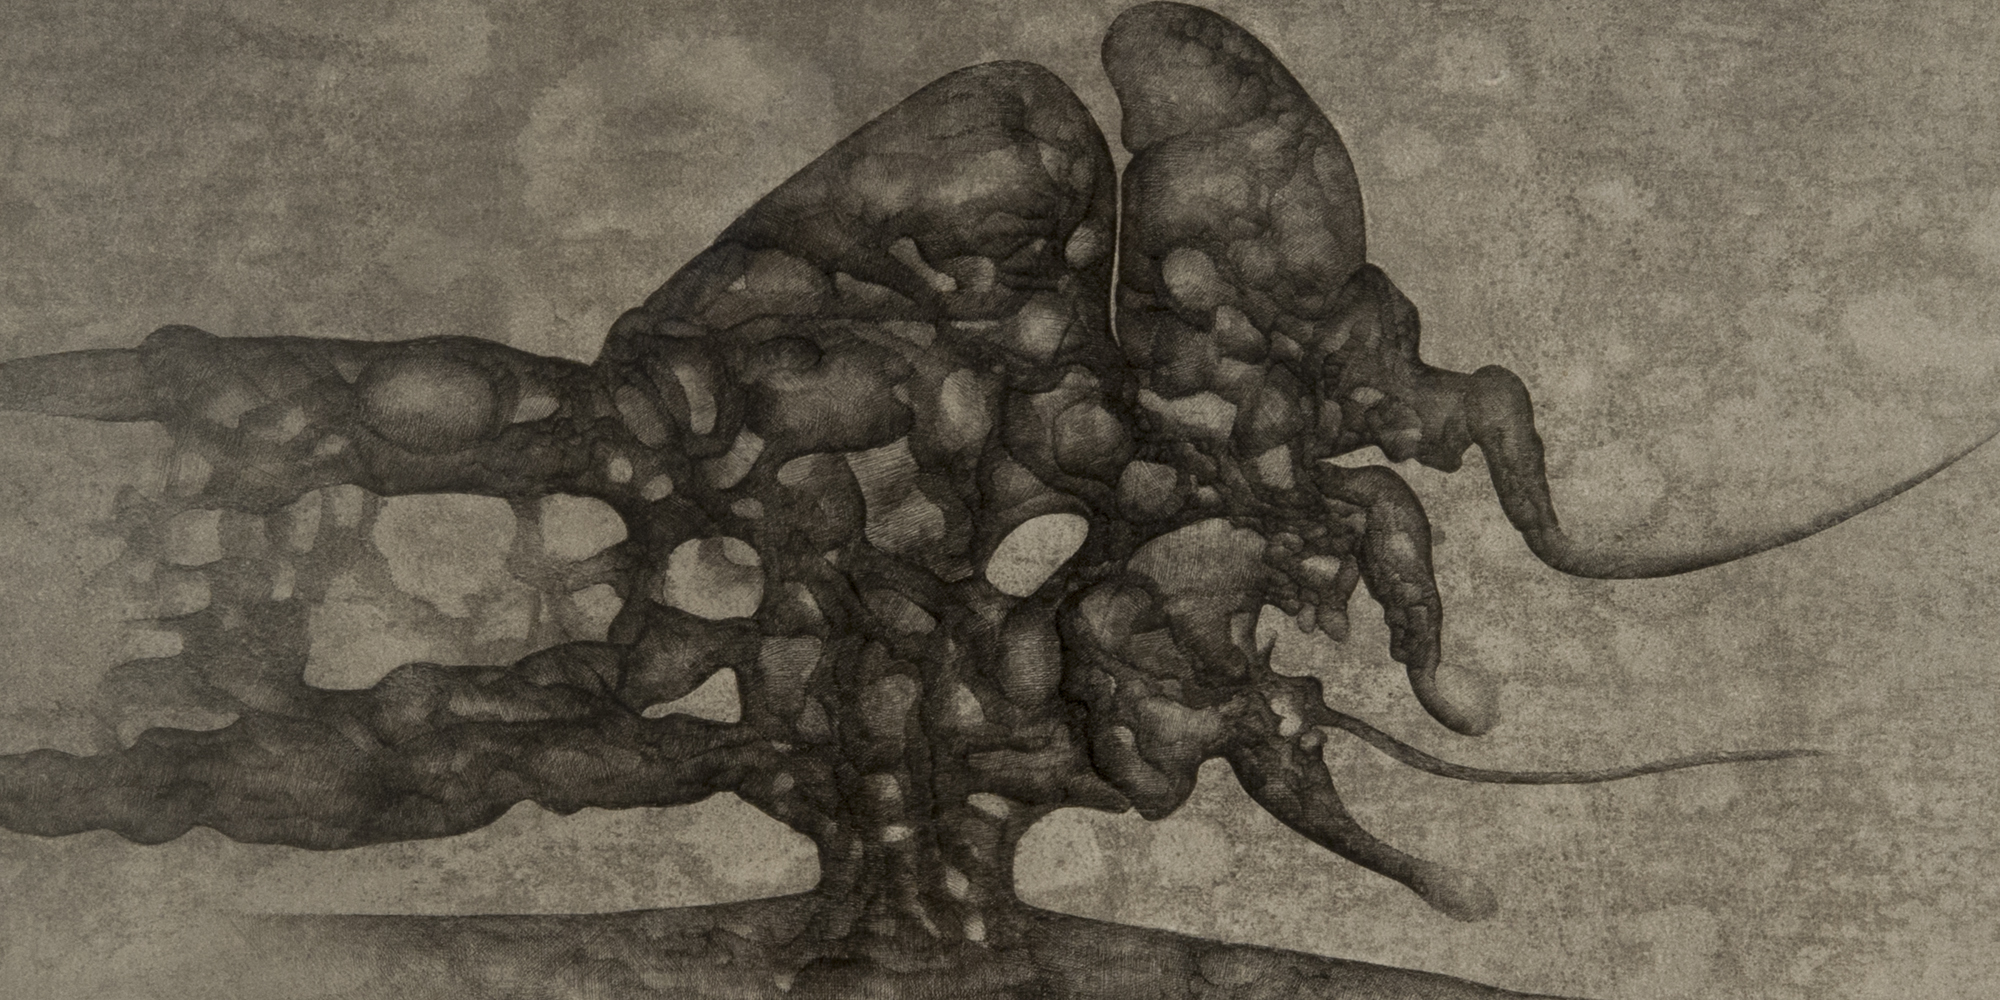 A drawing of a dark, swirling structure with holes. The structure appears as if growing out of the ground like a tree.